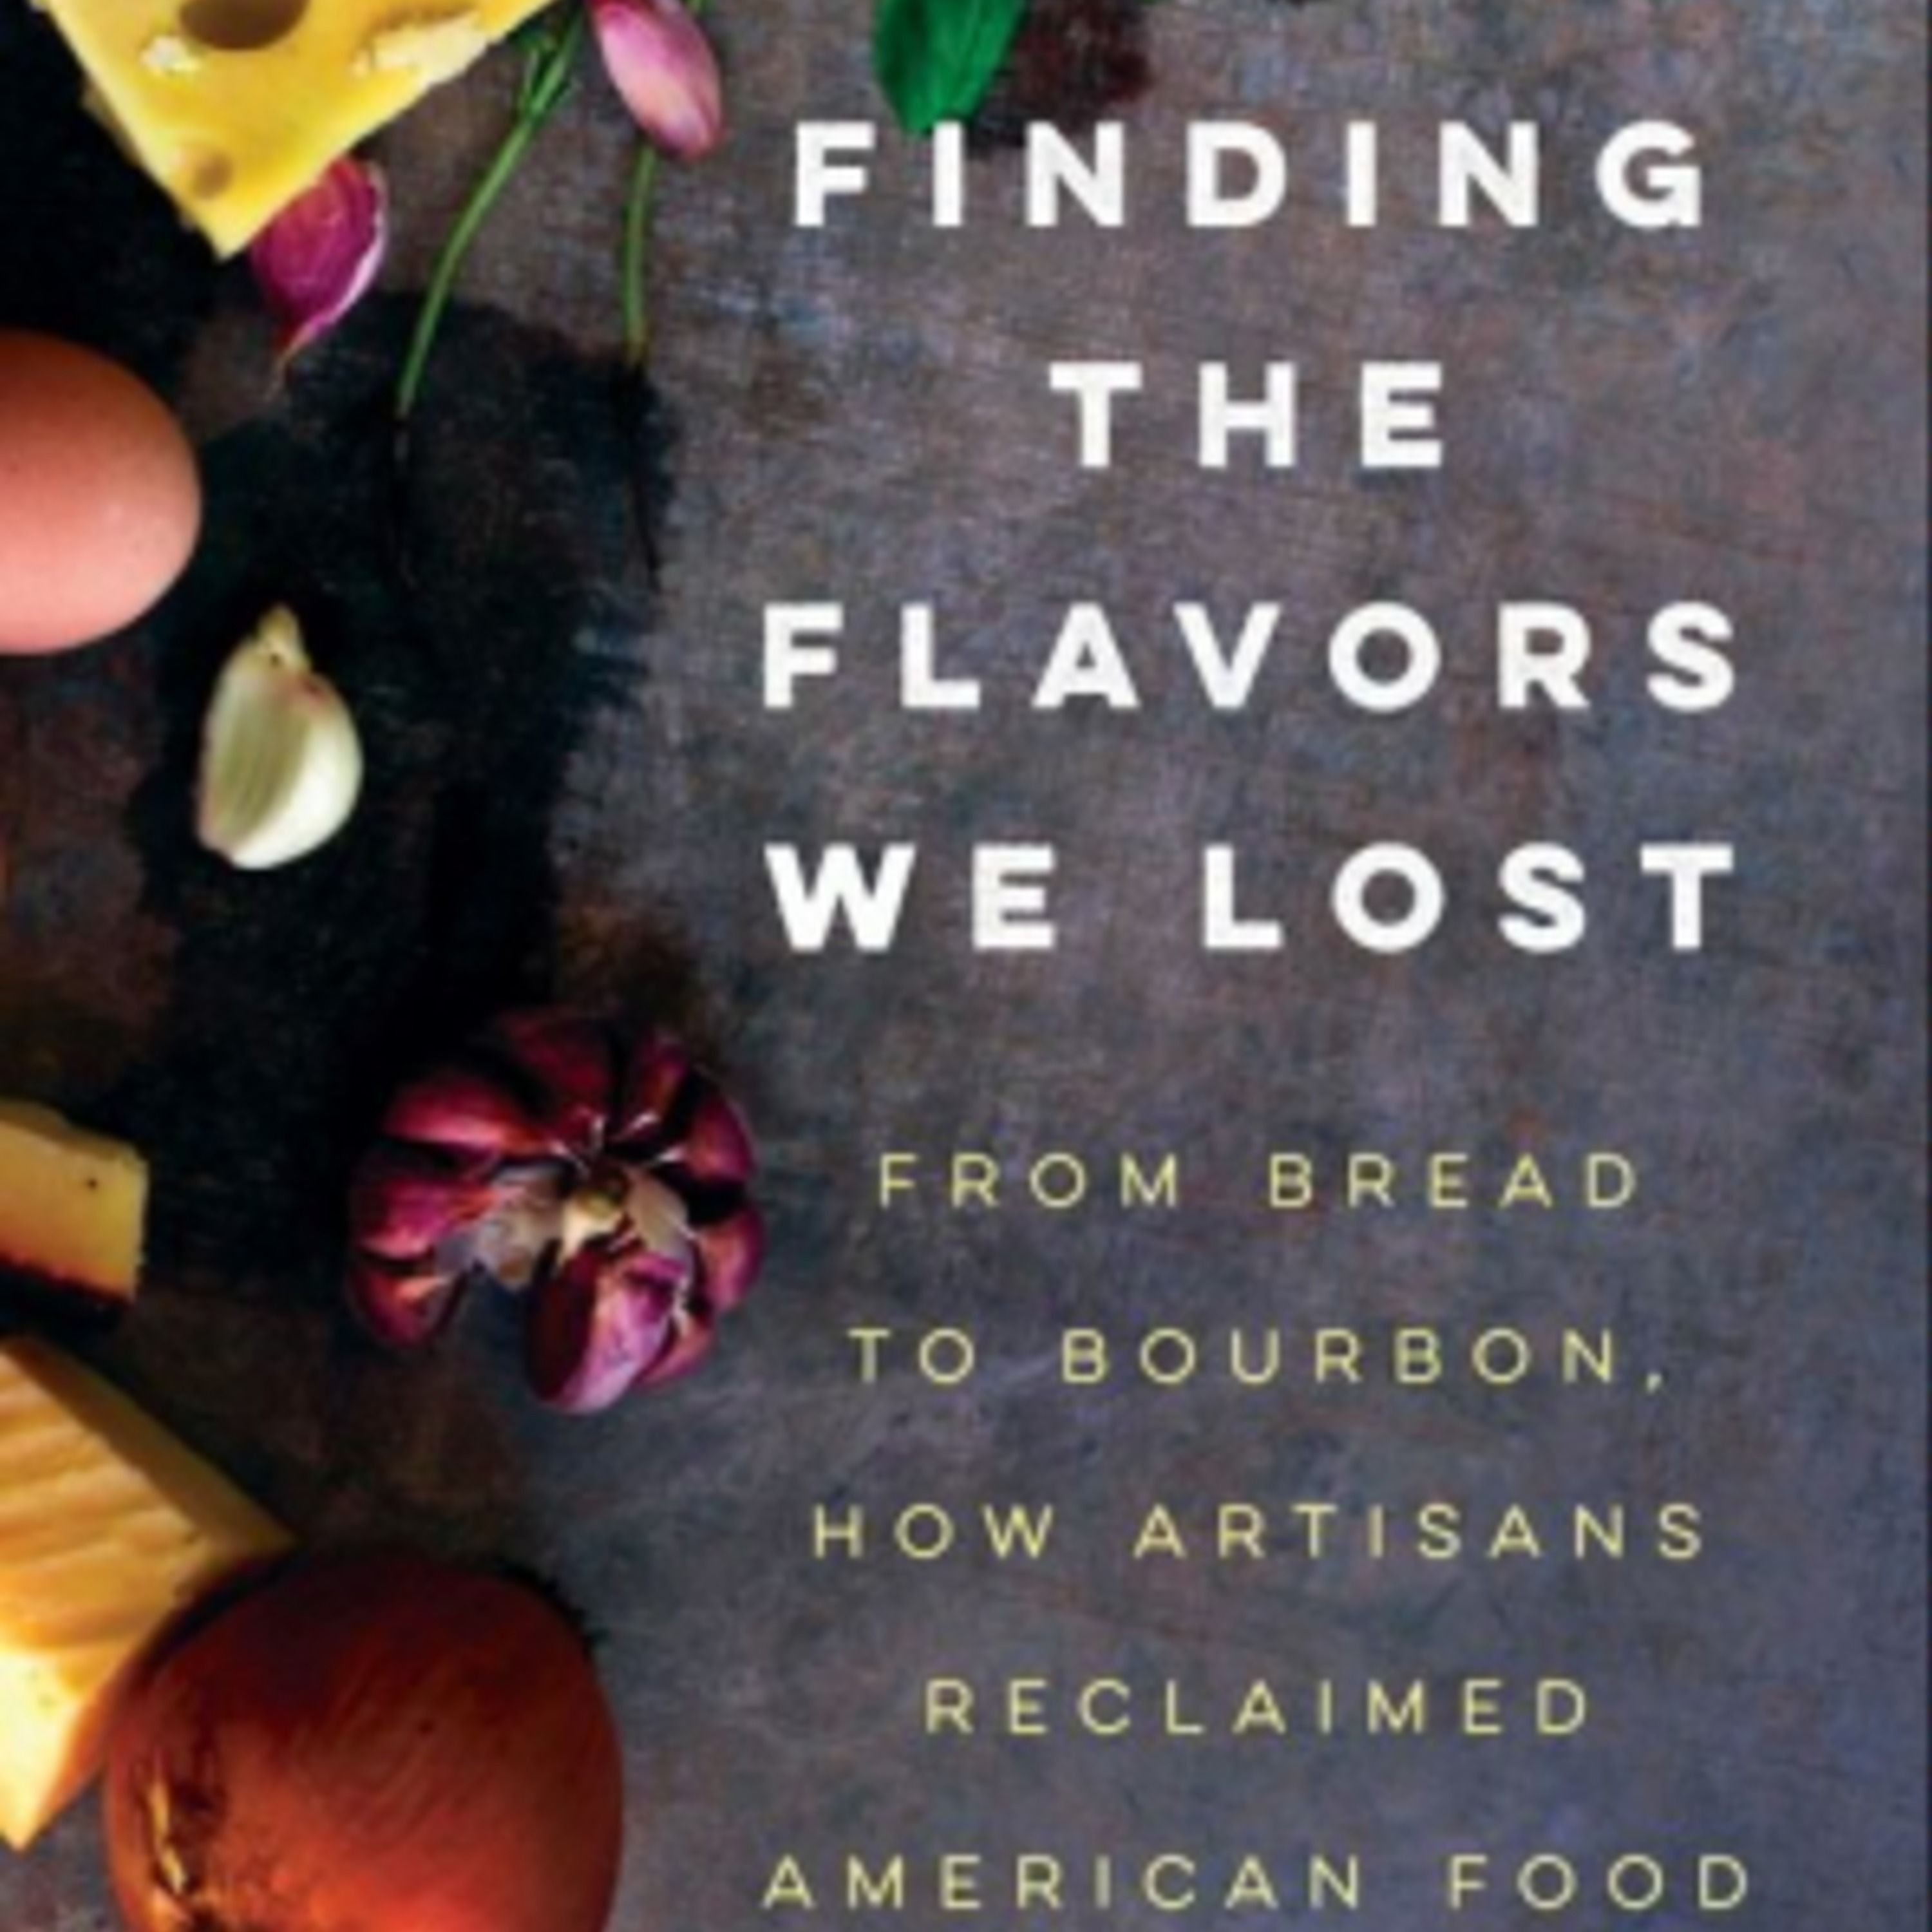 Episode 242: How Artisans Reclaimed America's Lost Flavors